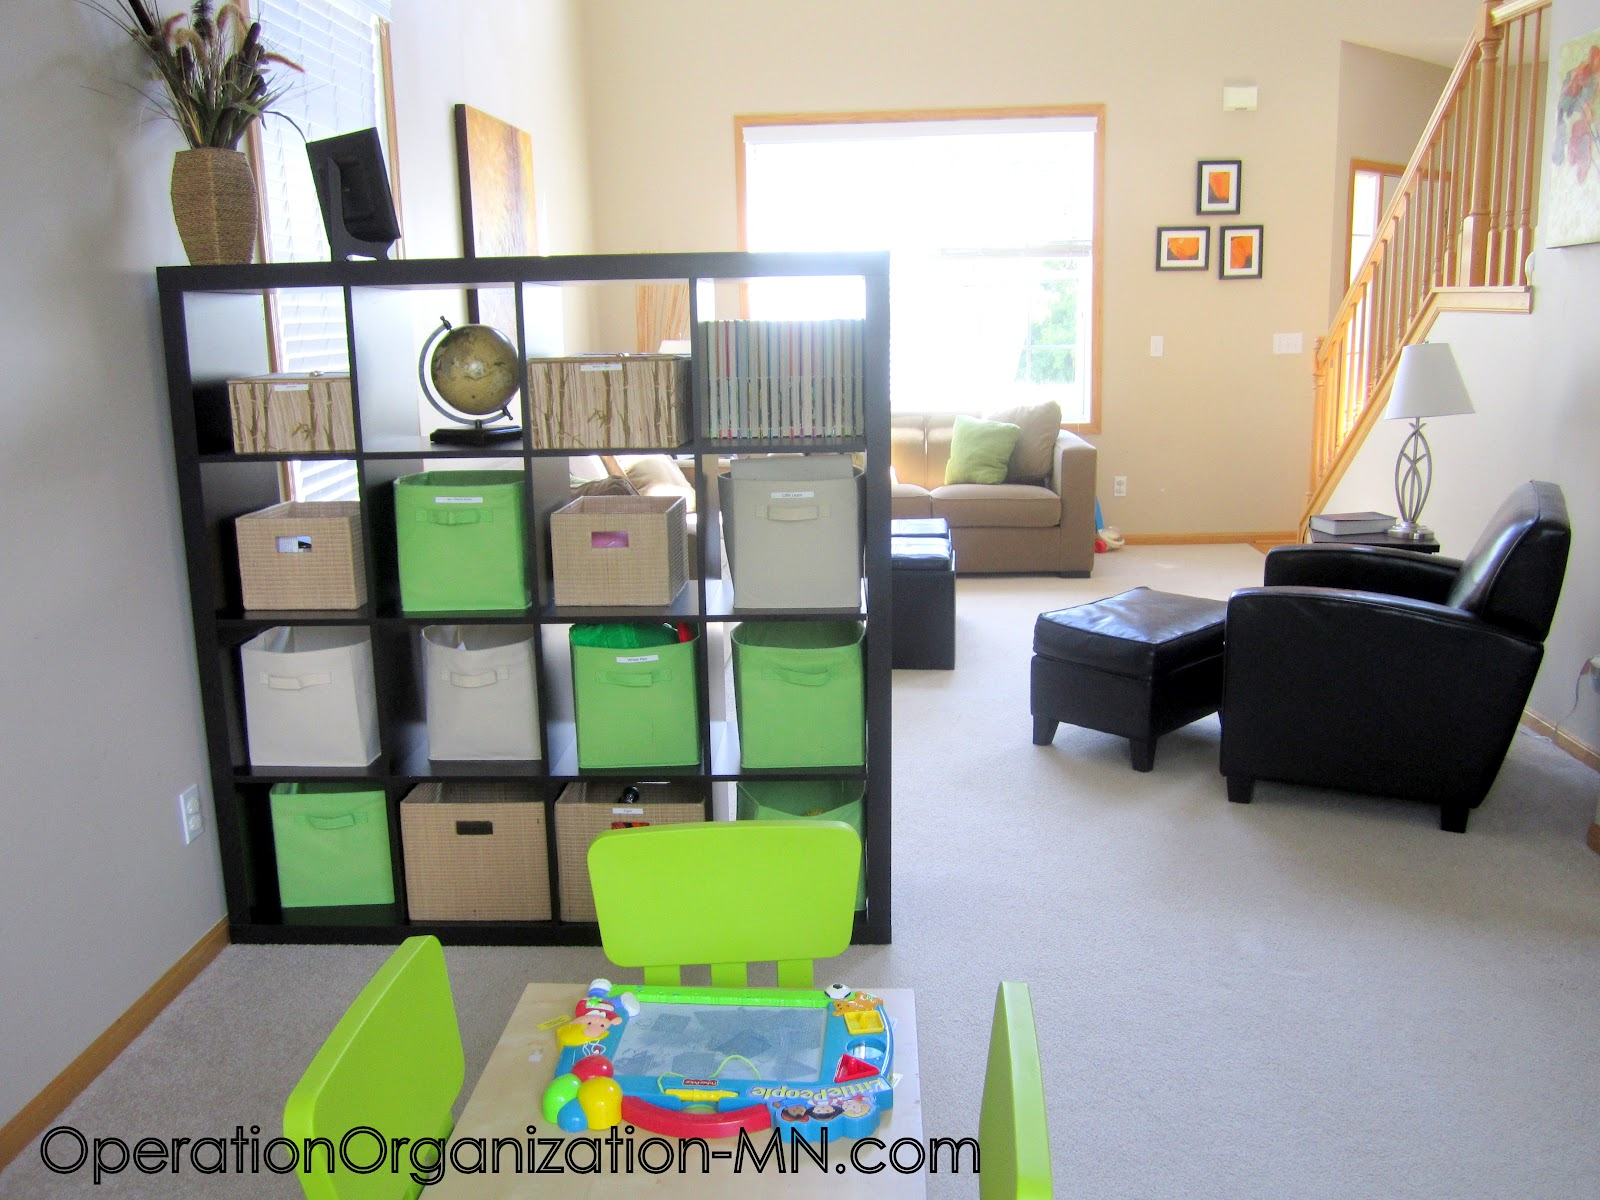 Operation organization professional organizer peachtree for How to organize a small room